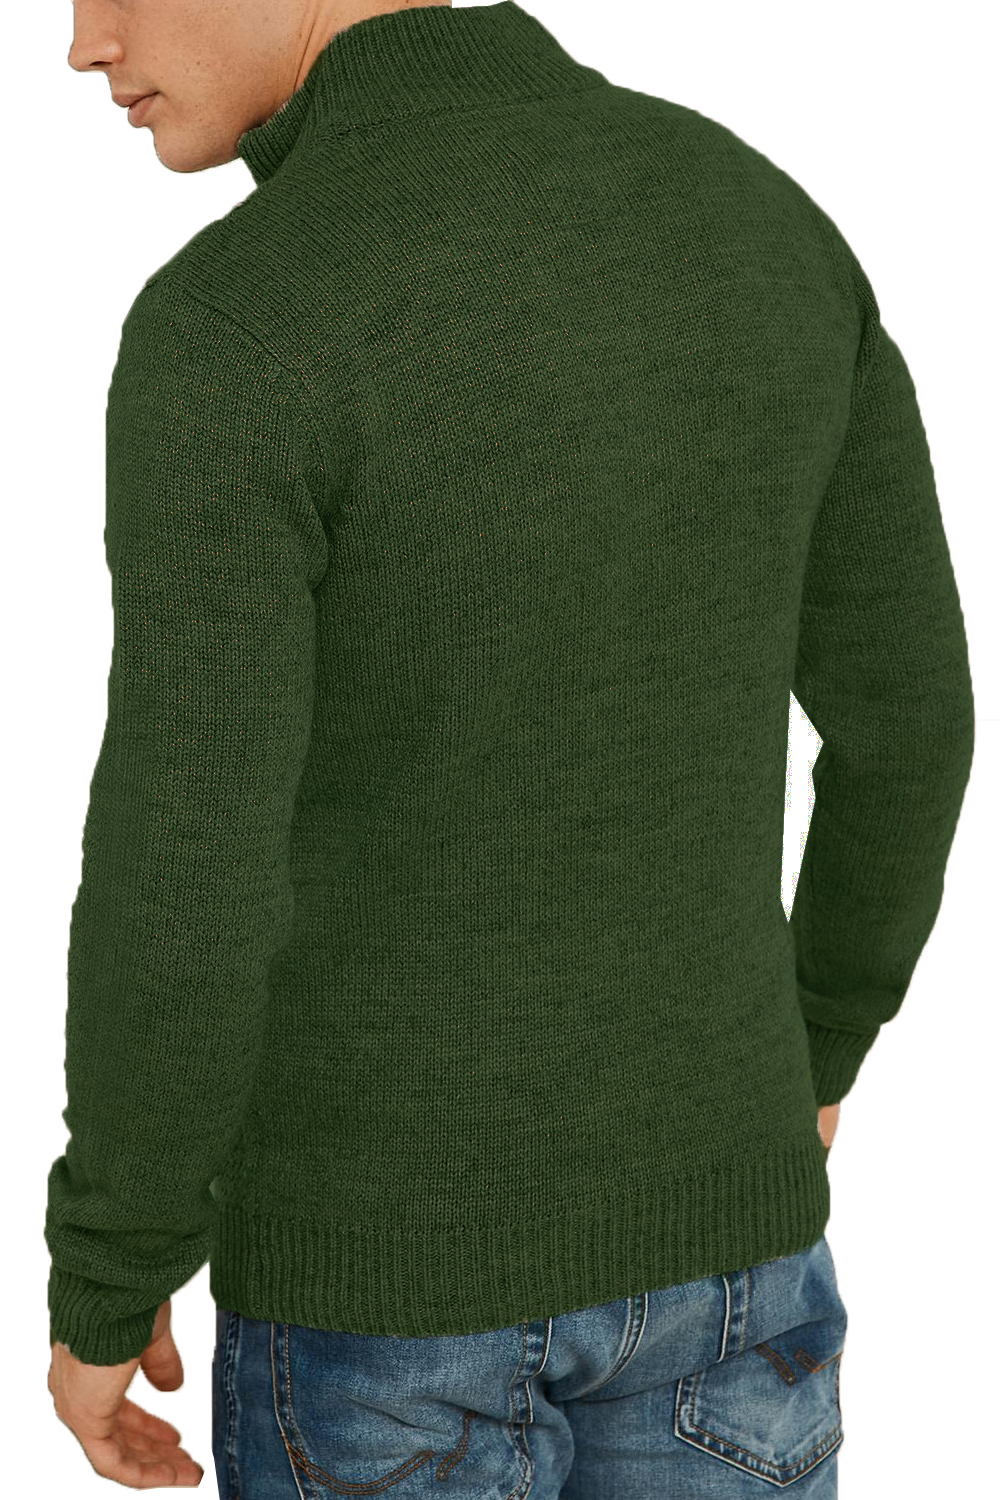 Threadbare-Wray-Mens-Top-Cable-Knited-Designer-Luxurious-Wool-Mix-Raglan-Jumpers thumbnail 19